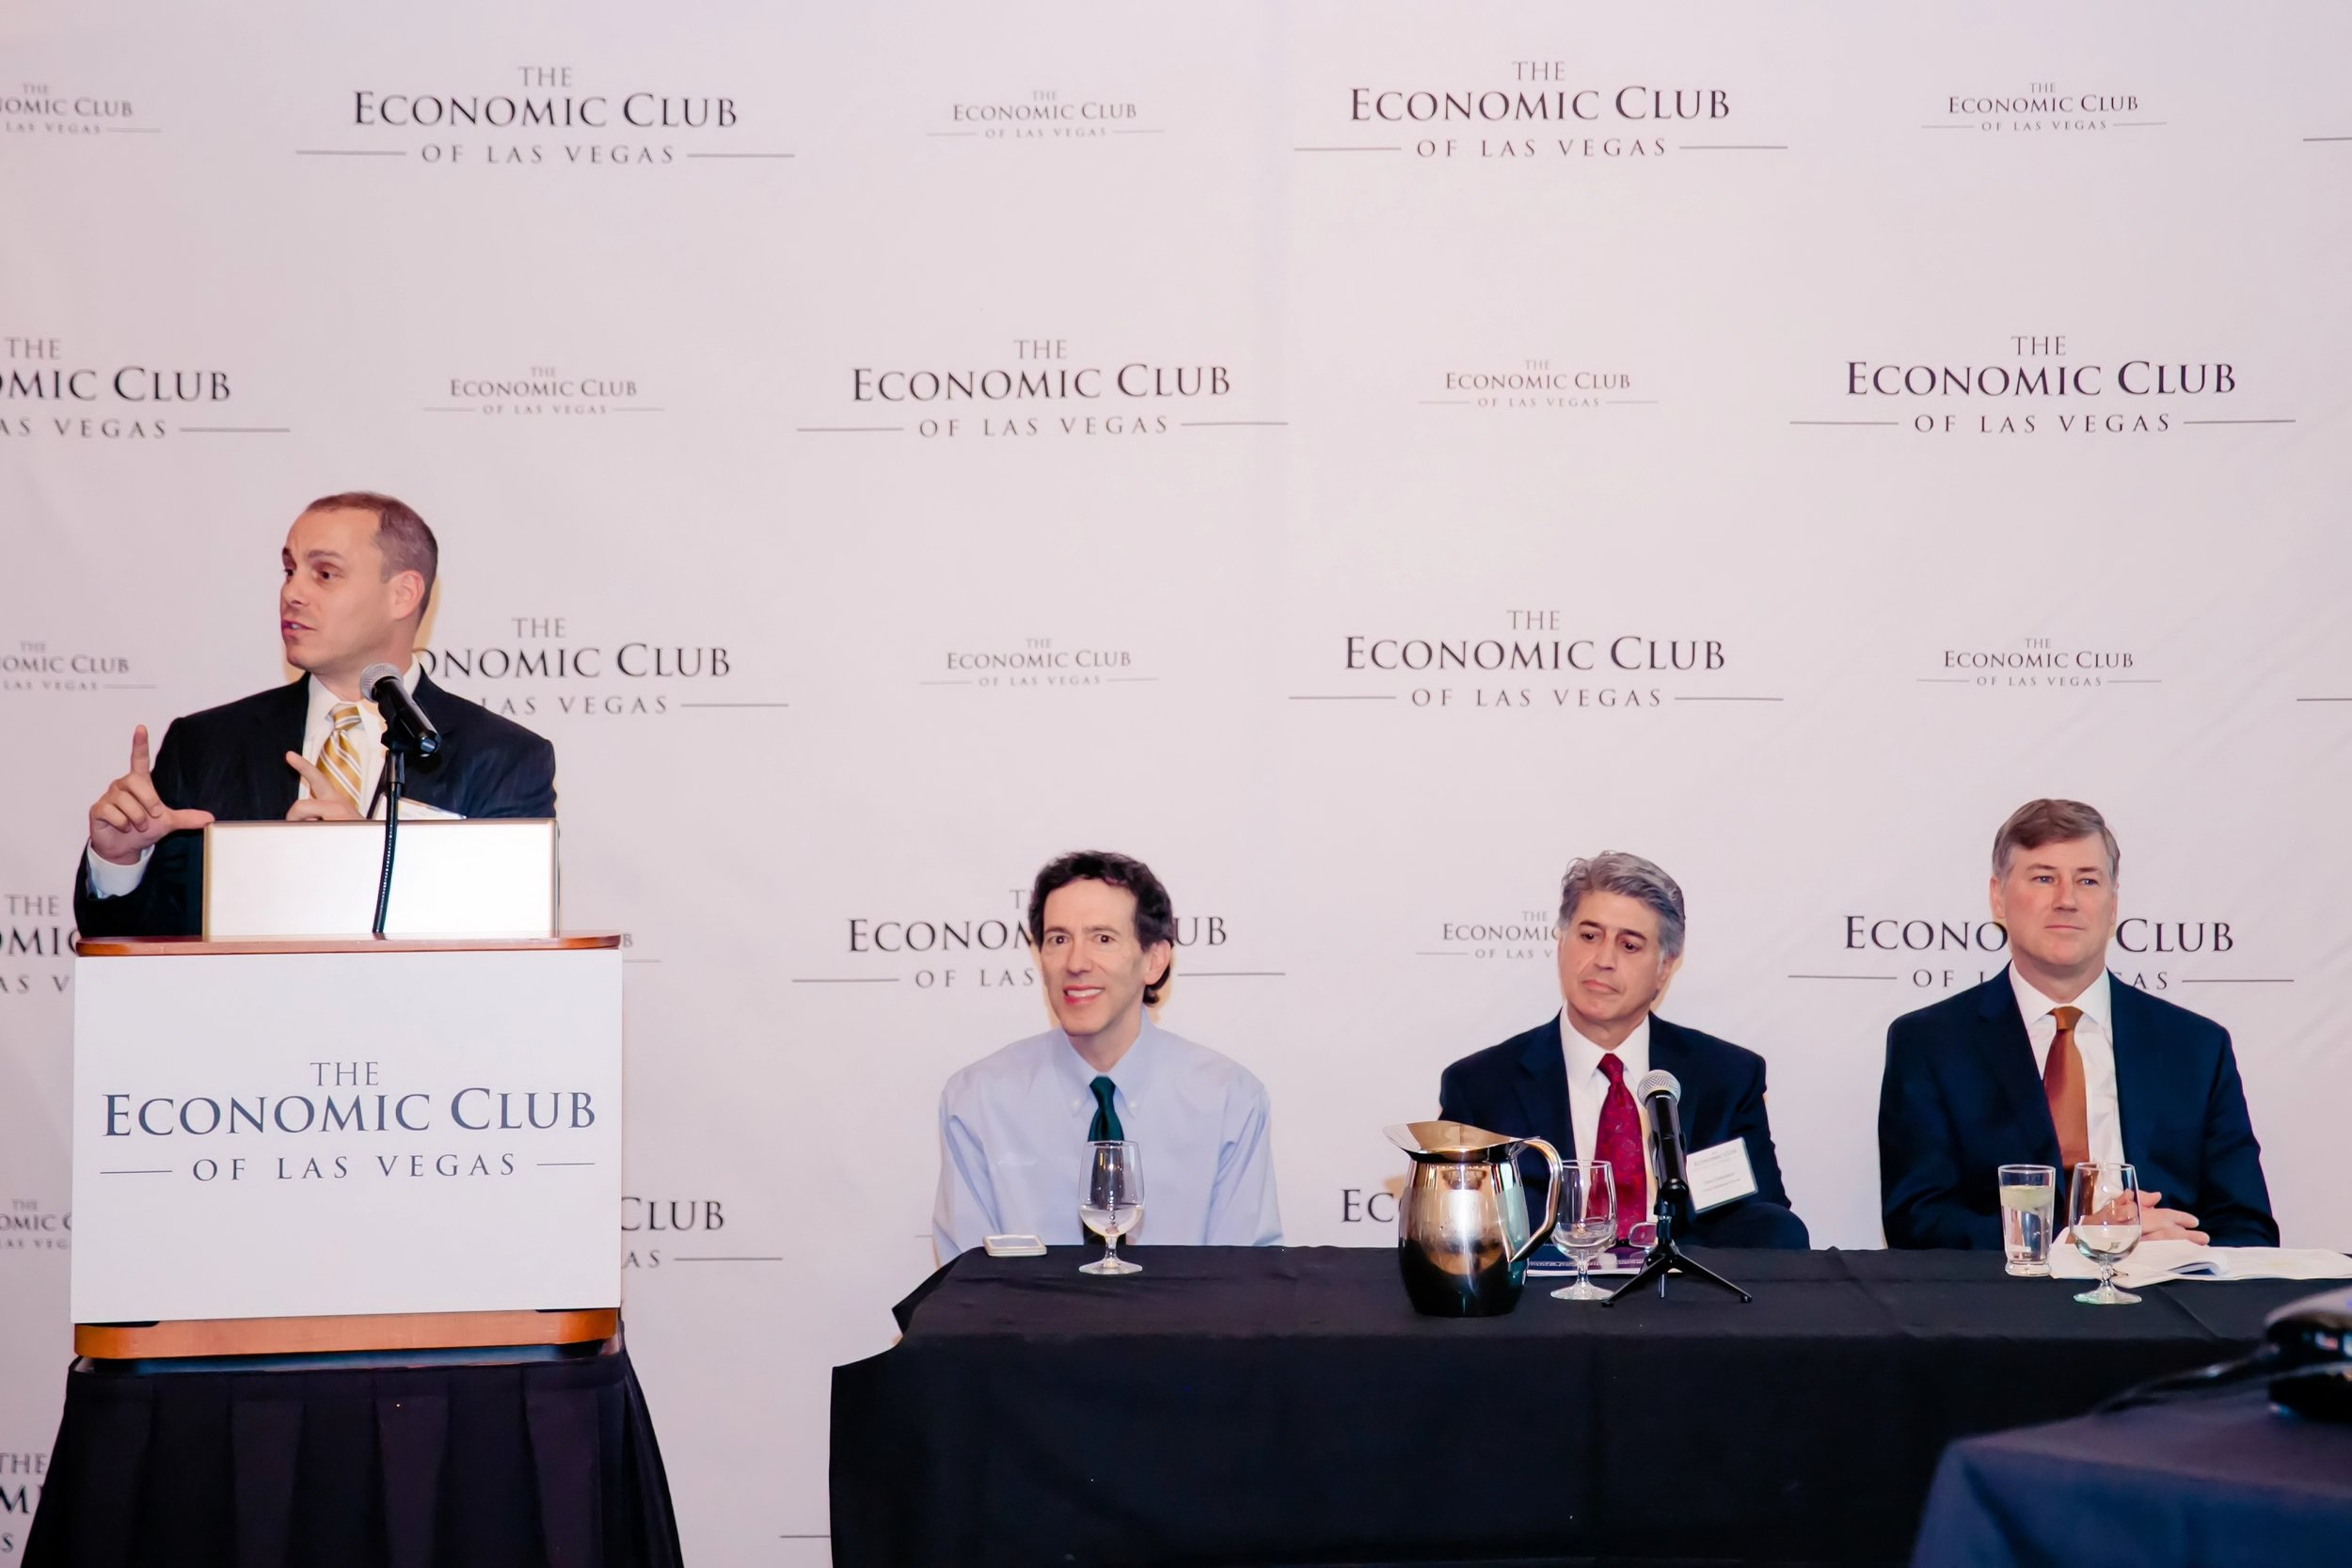 Economic Club of Las Vegas 10 26 17 Meeting (27 of 54) - Copy.jpg